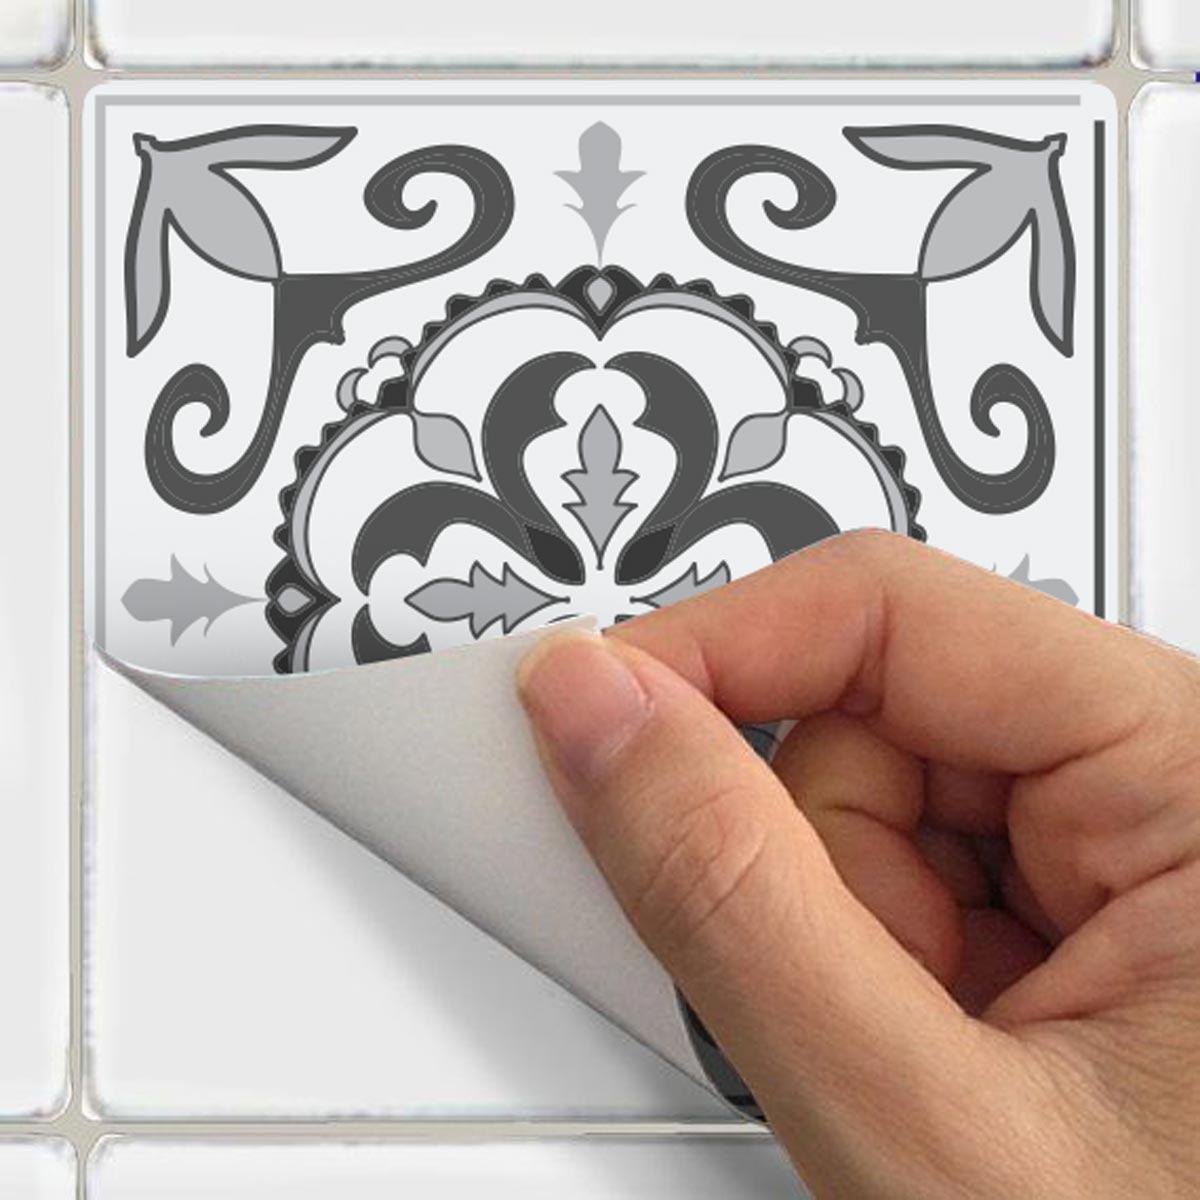 Stickers Carrelage Cuisine: 60 Stickers Carrelages Azulejos Consuelo